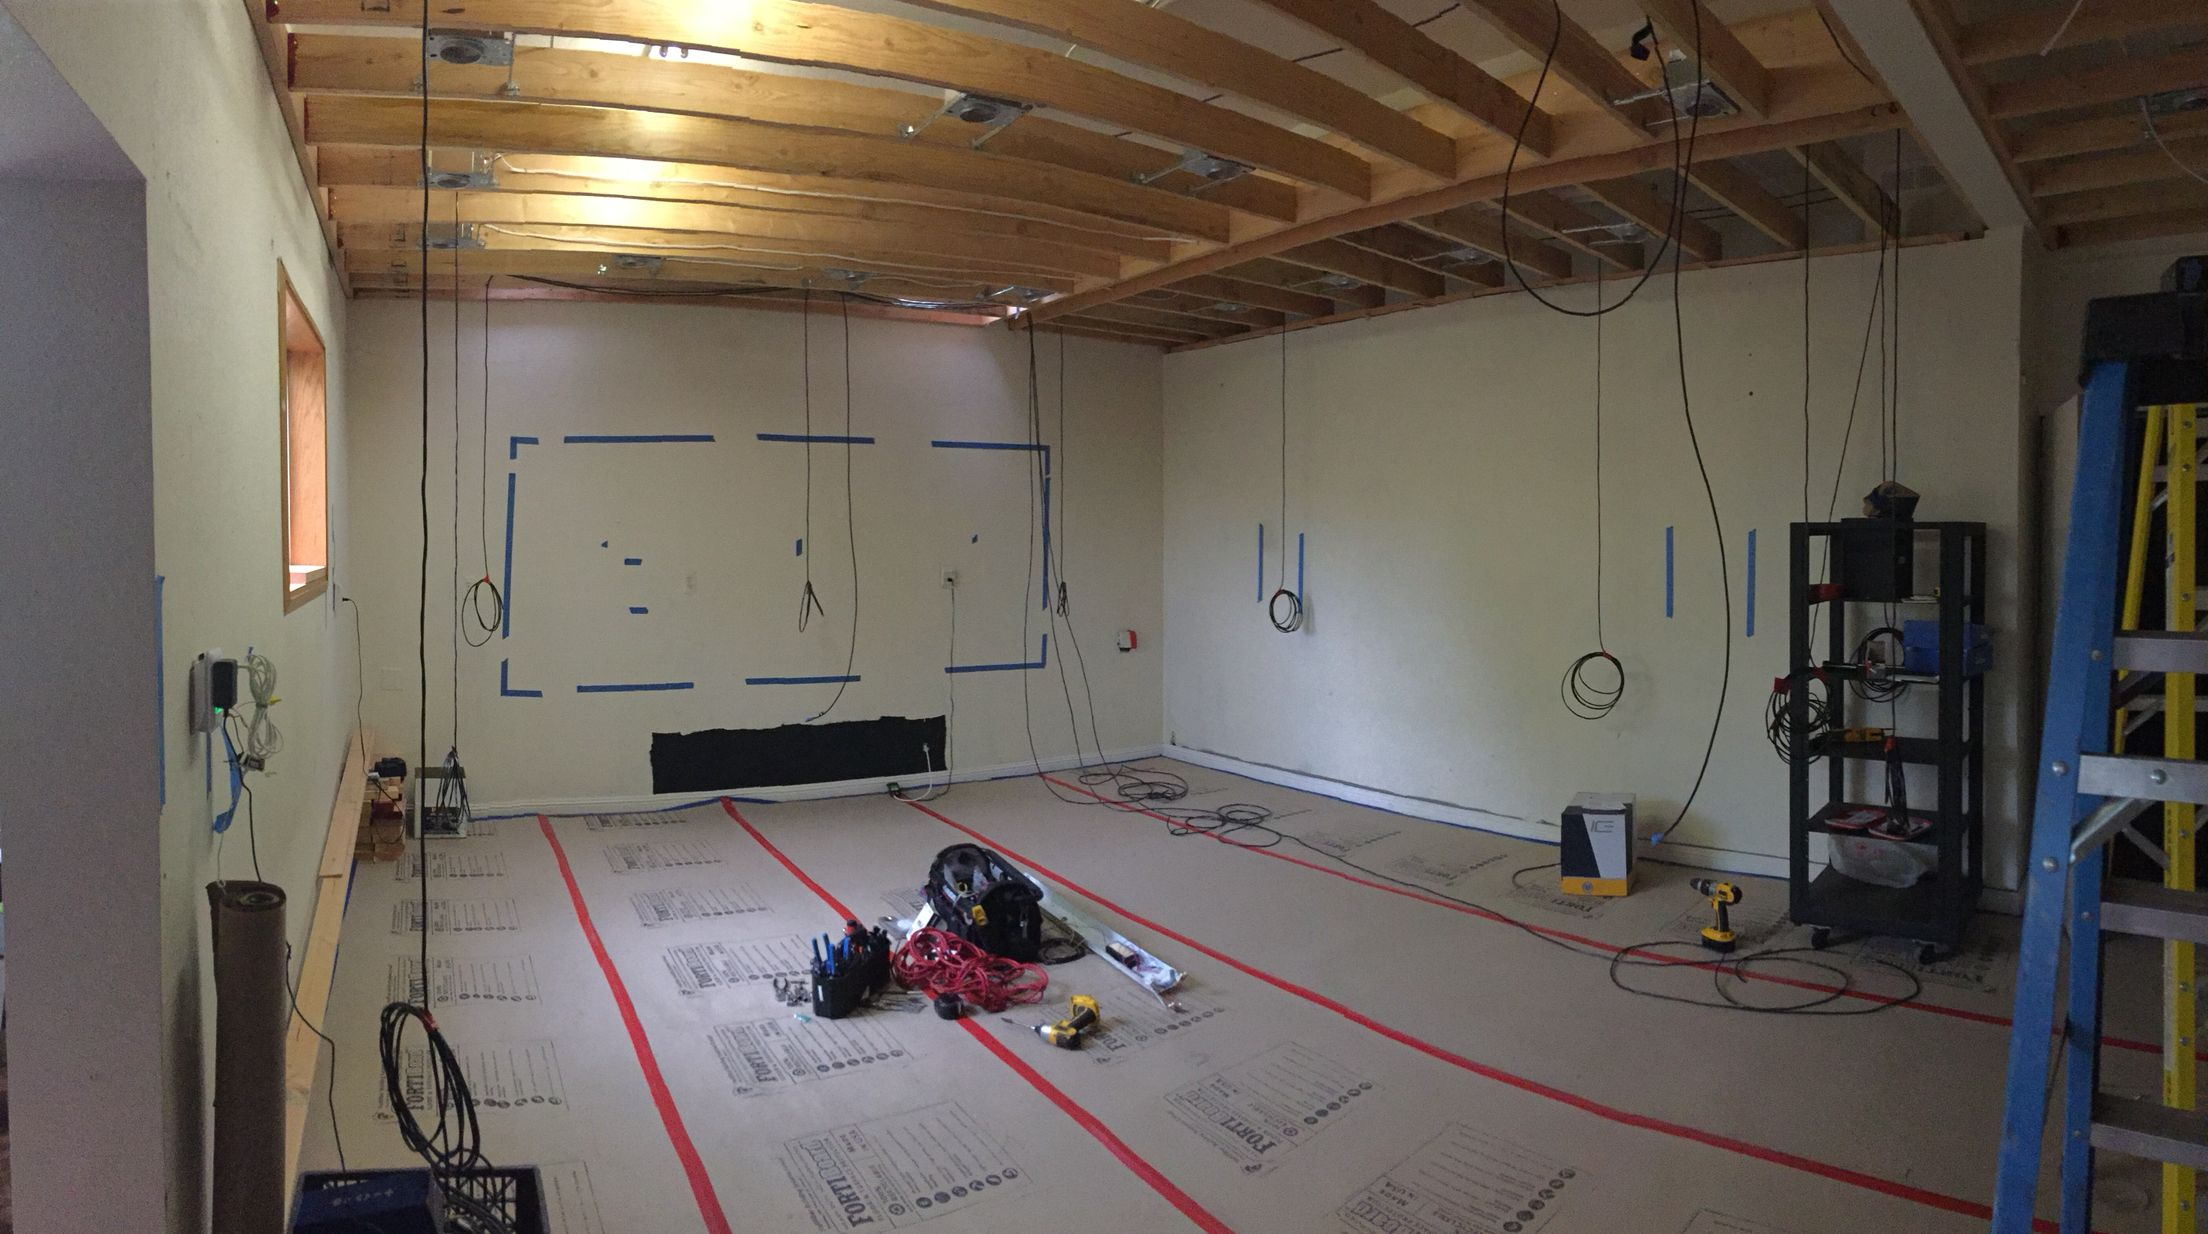 Hanging The Dolby Atmos Speaker Wires131 Channels Home Theater Wiring Design